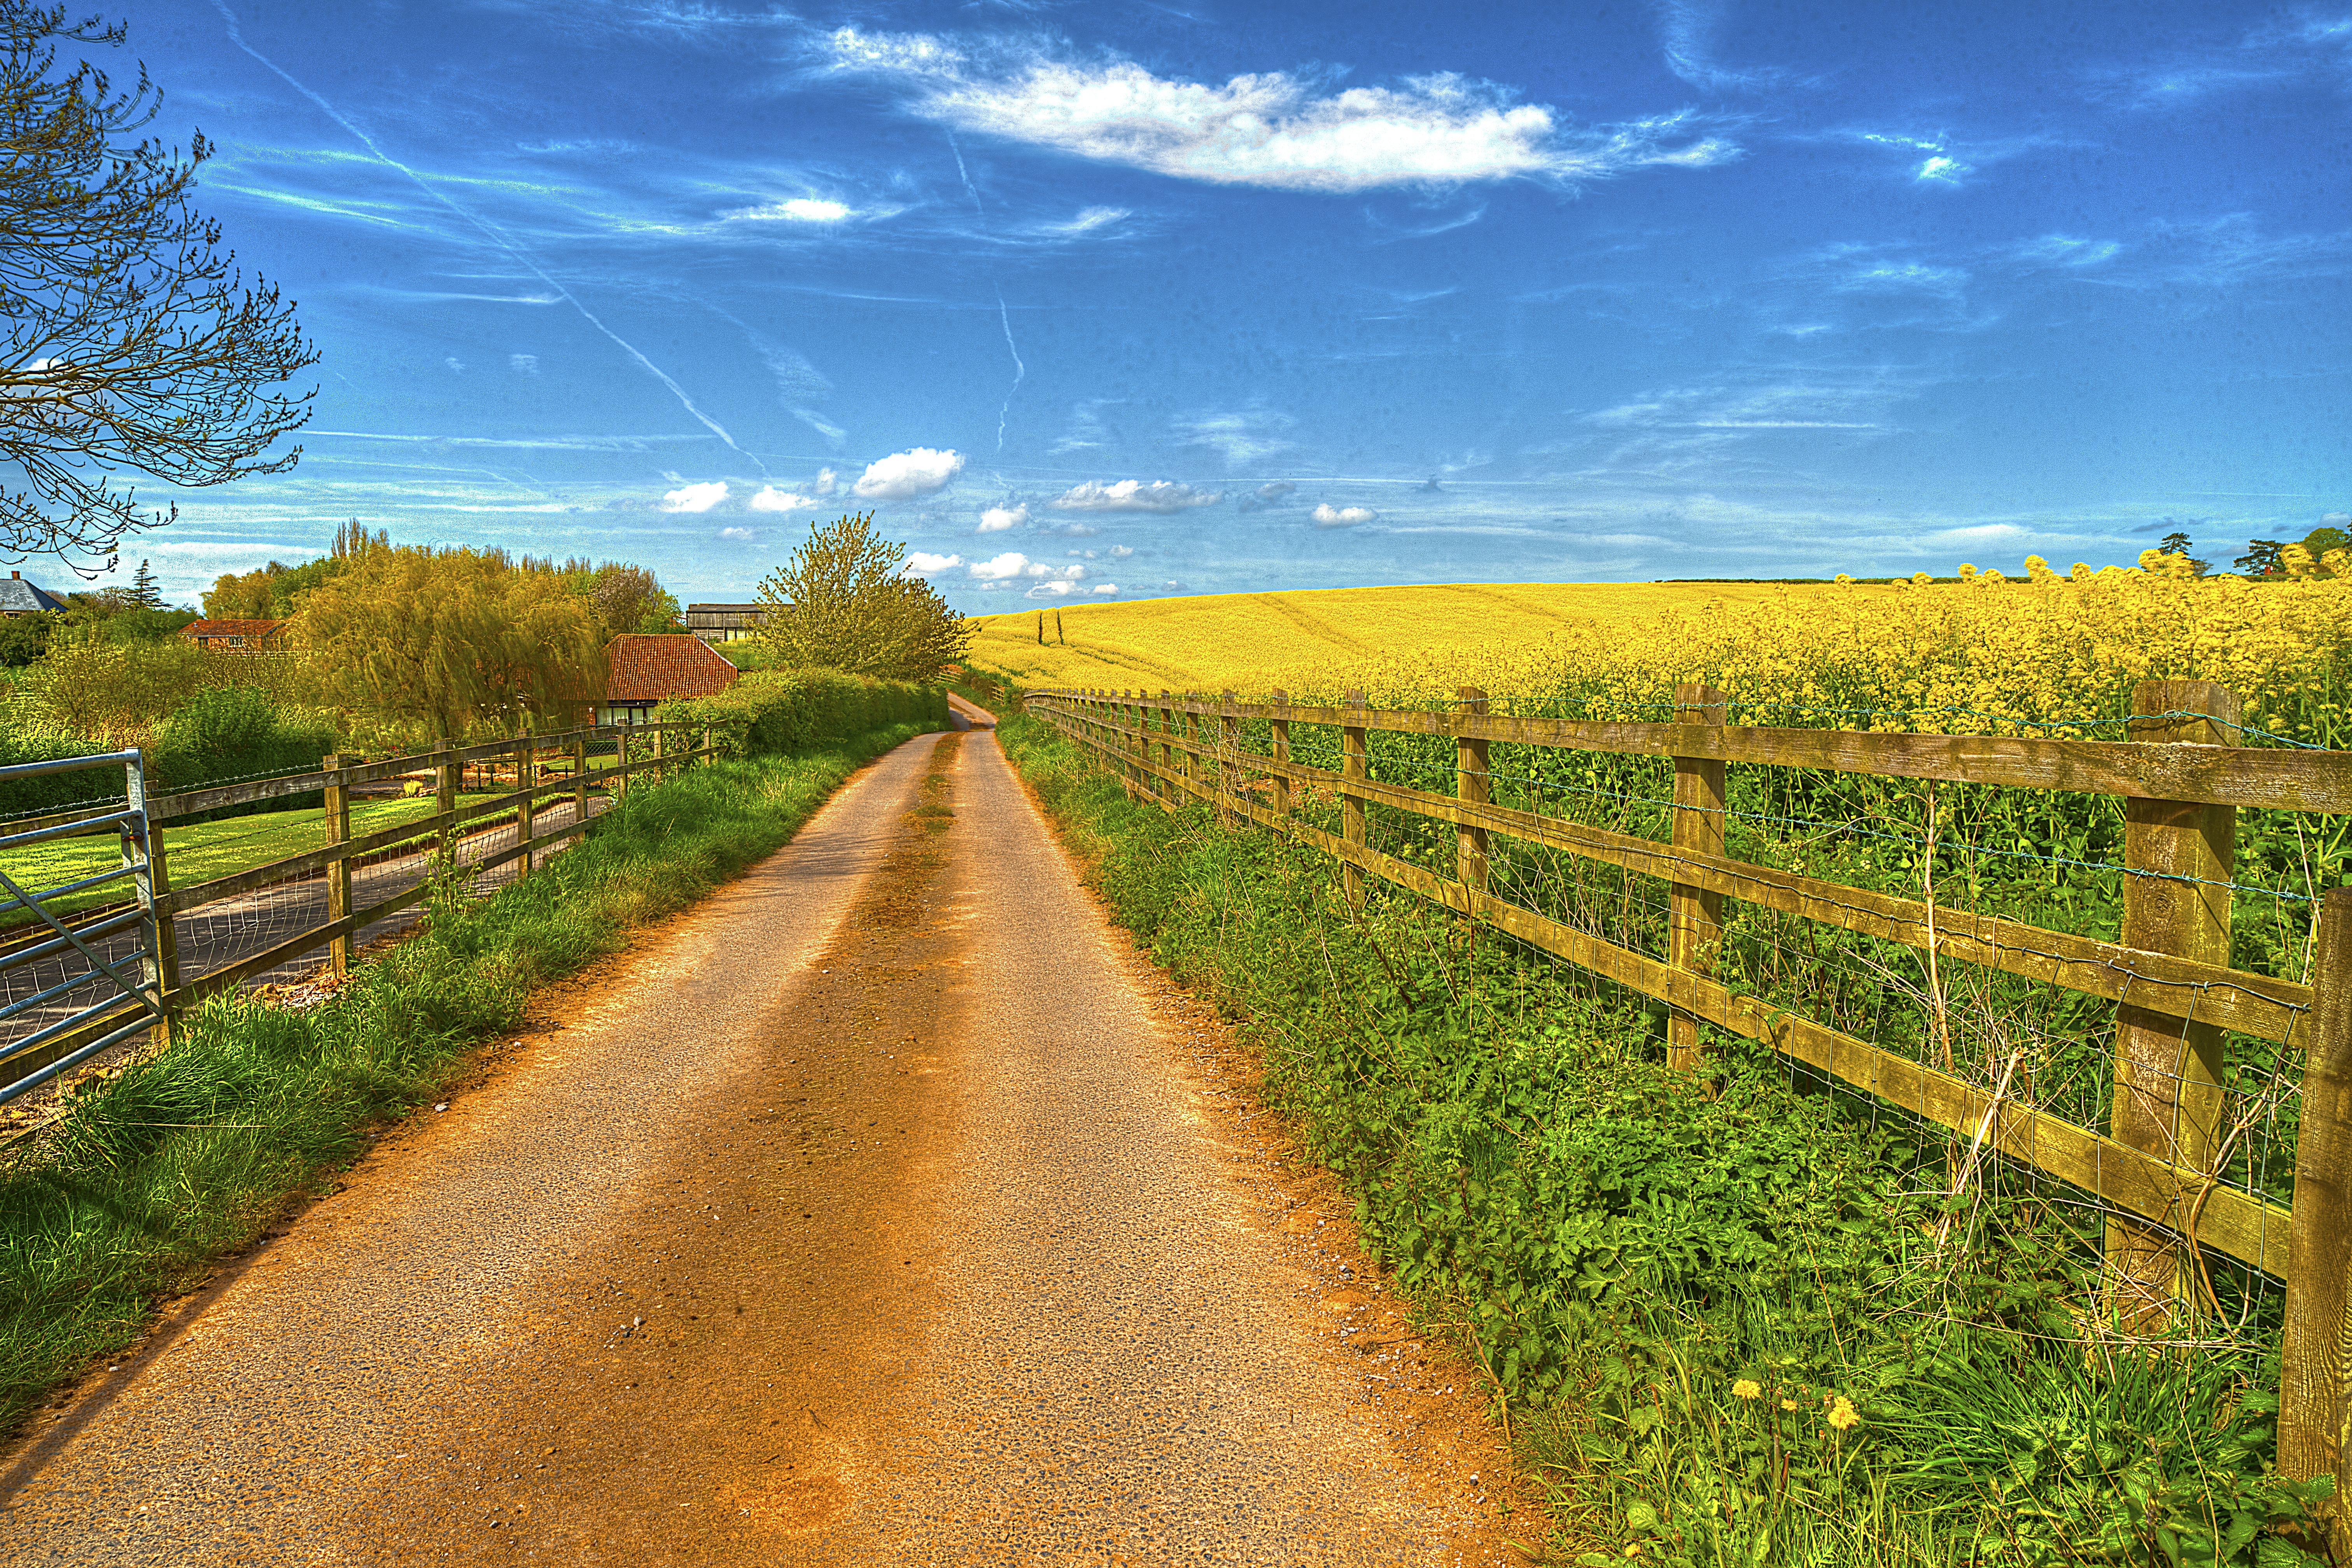 152592 download wallpaper Landscape, Nature, Houses, Road, Field, Fence screensavers and pictures for free